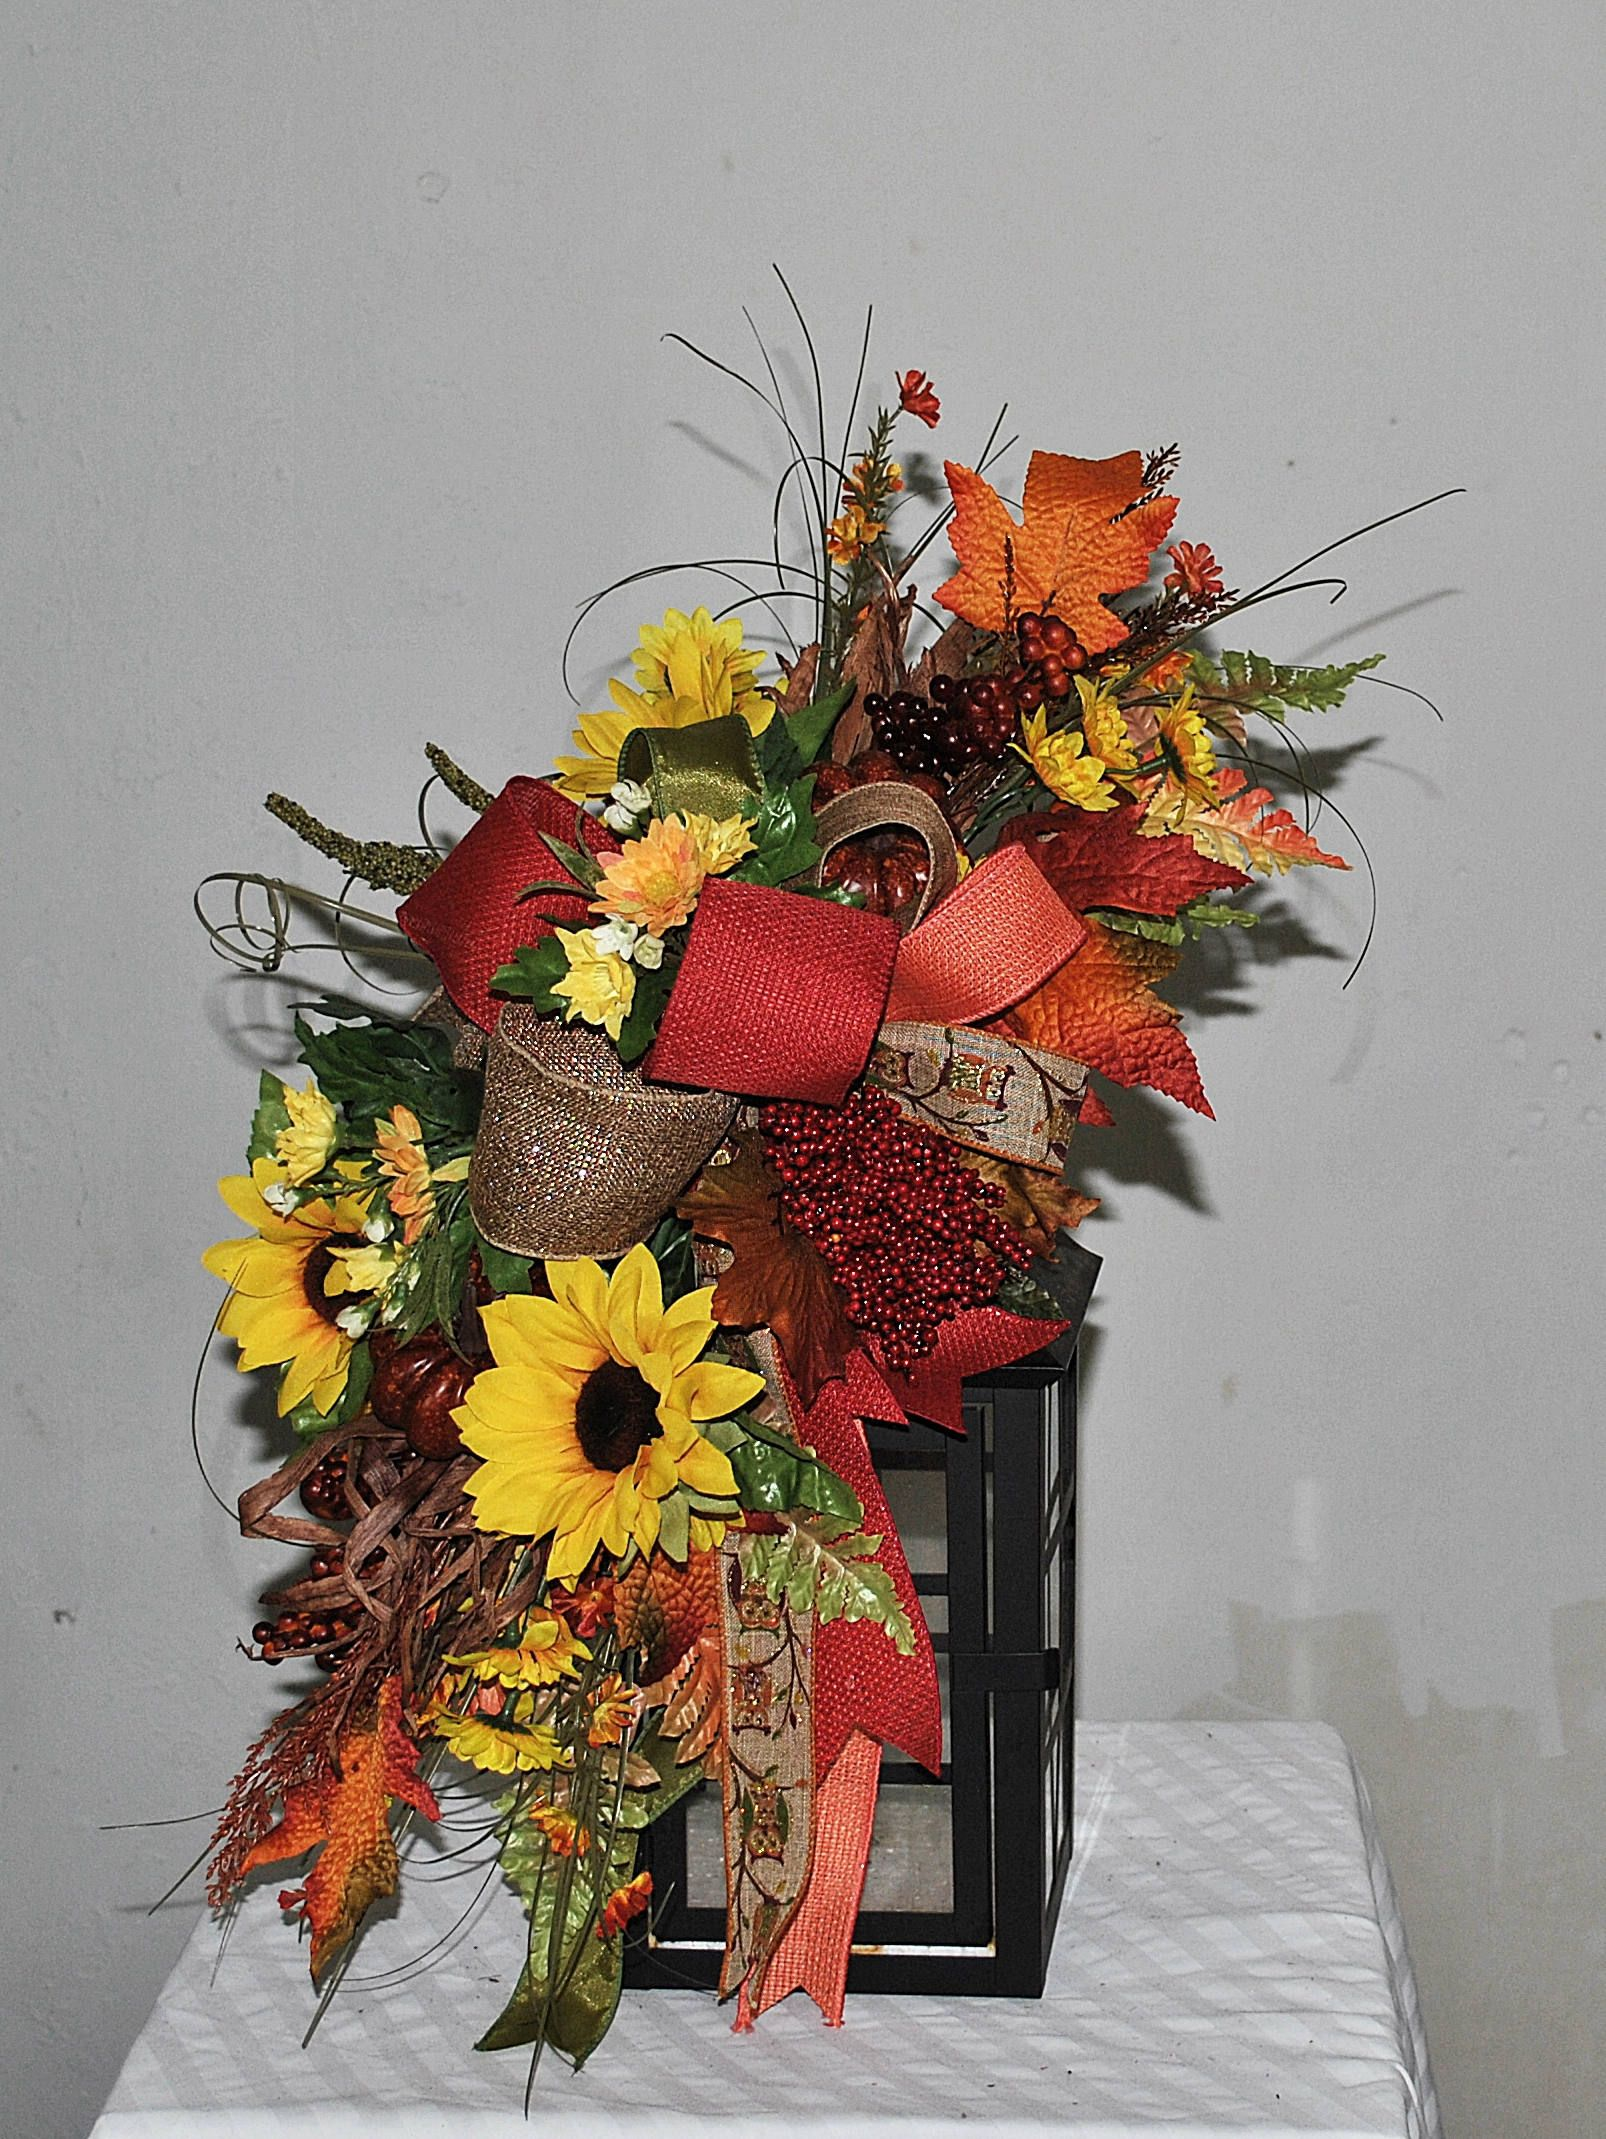 Fall Lantern Swag, Fall Swag, Autumn Lantern Swag, Pumpkins Sunflowers